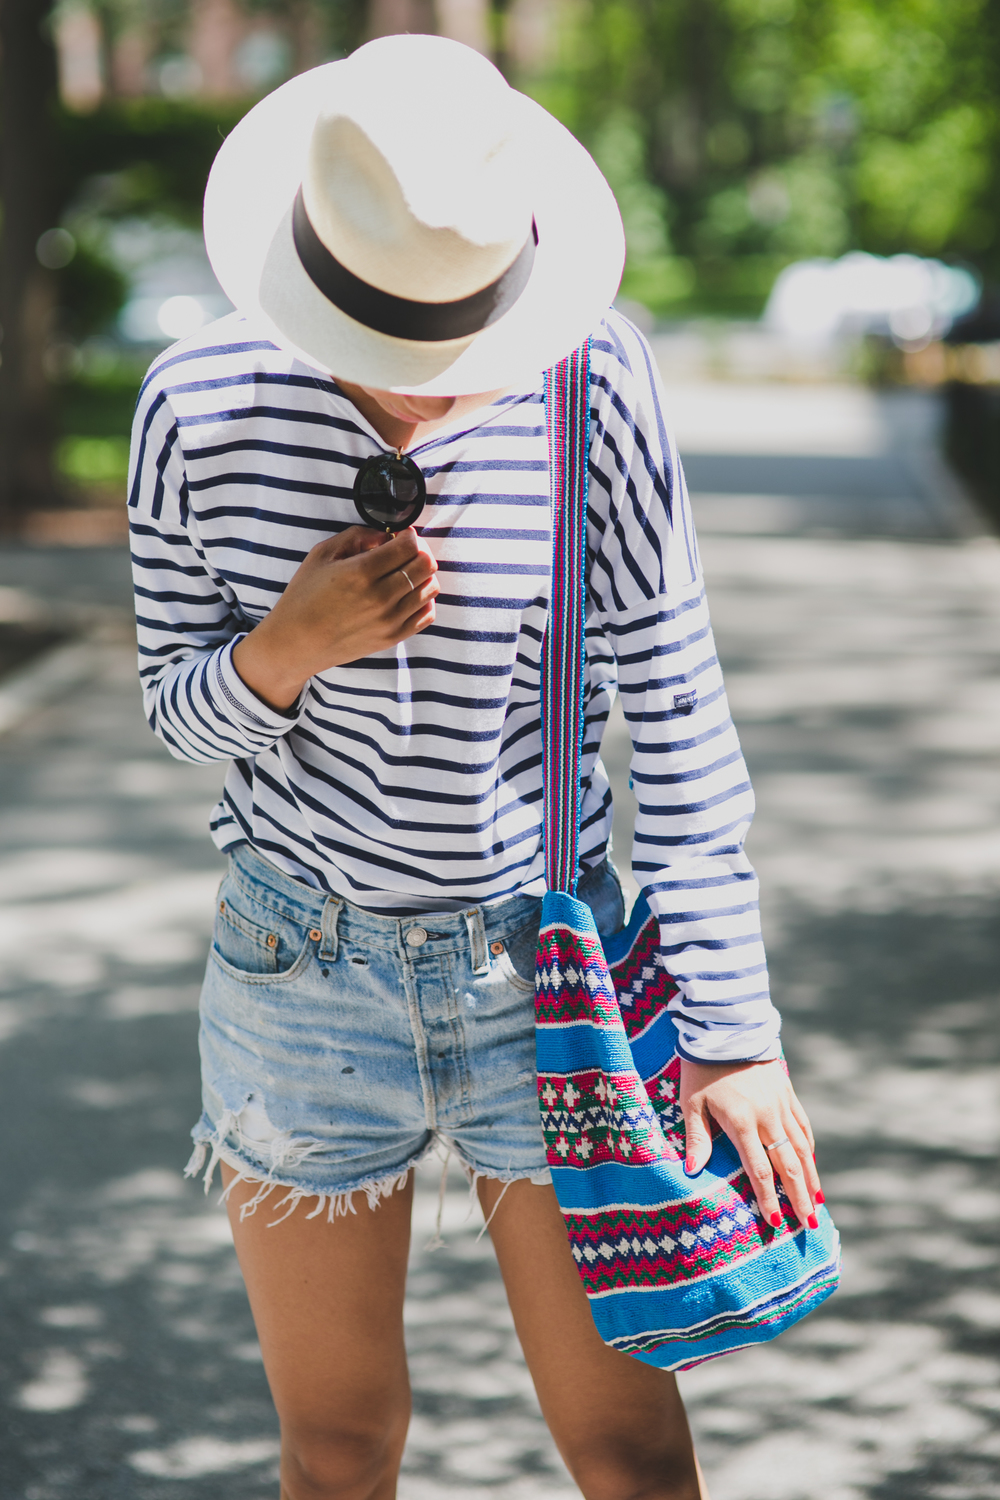 Claire Leana  Millar Wearing J Crew Saint James Stripped Shirt Redone Denim Miu Miu Sunnies J. Crew Hat